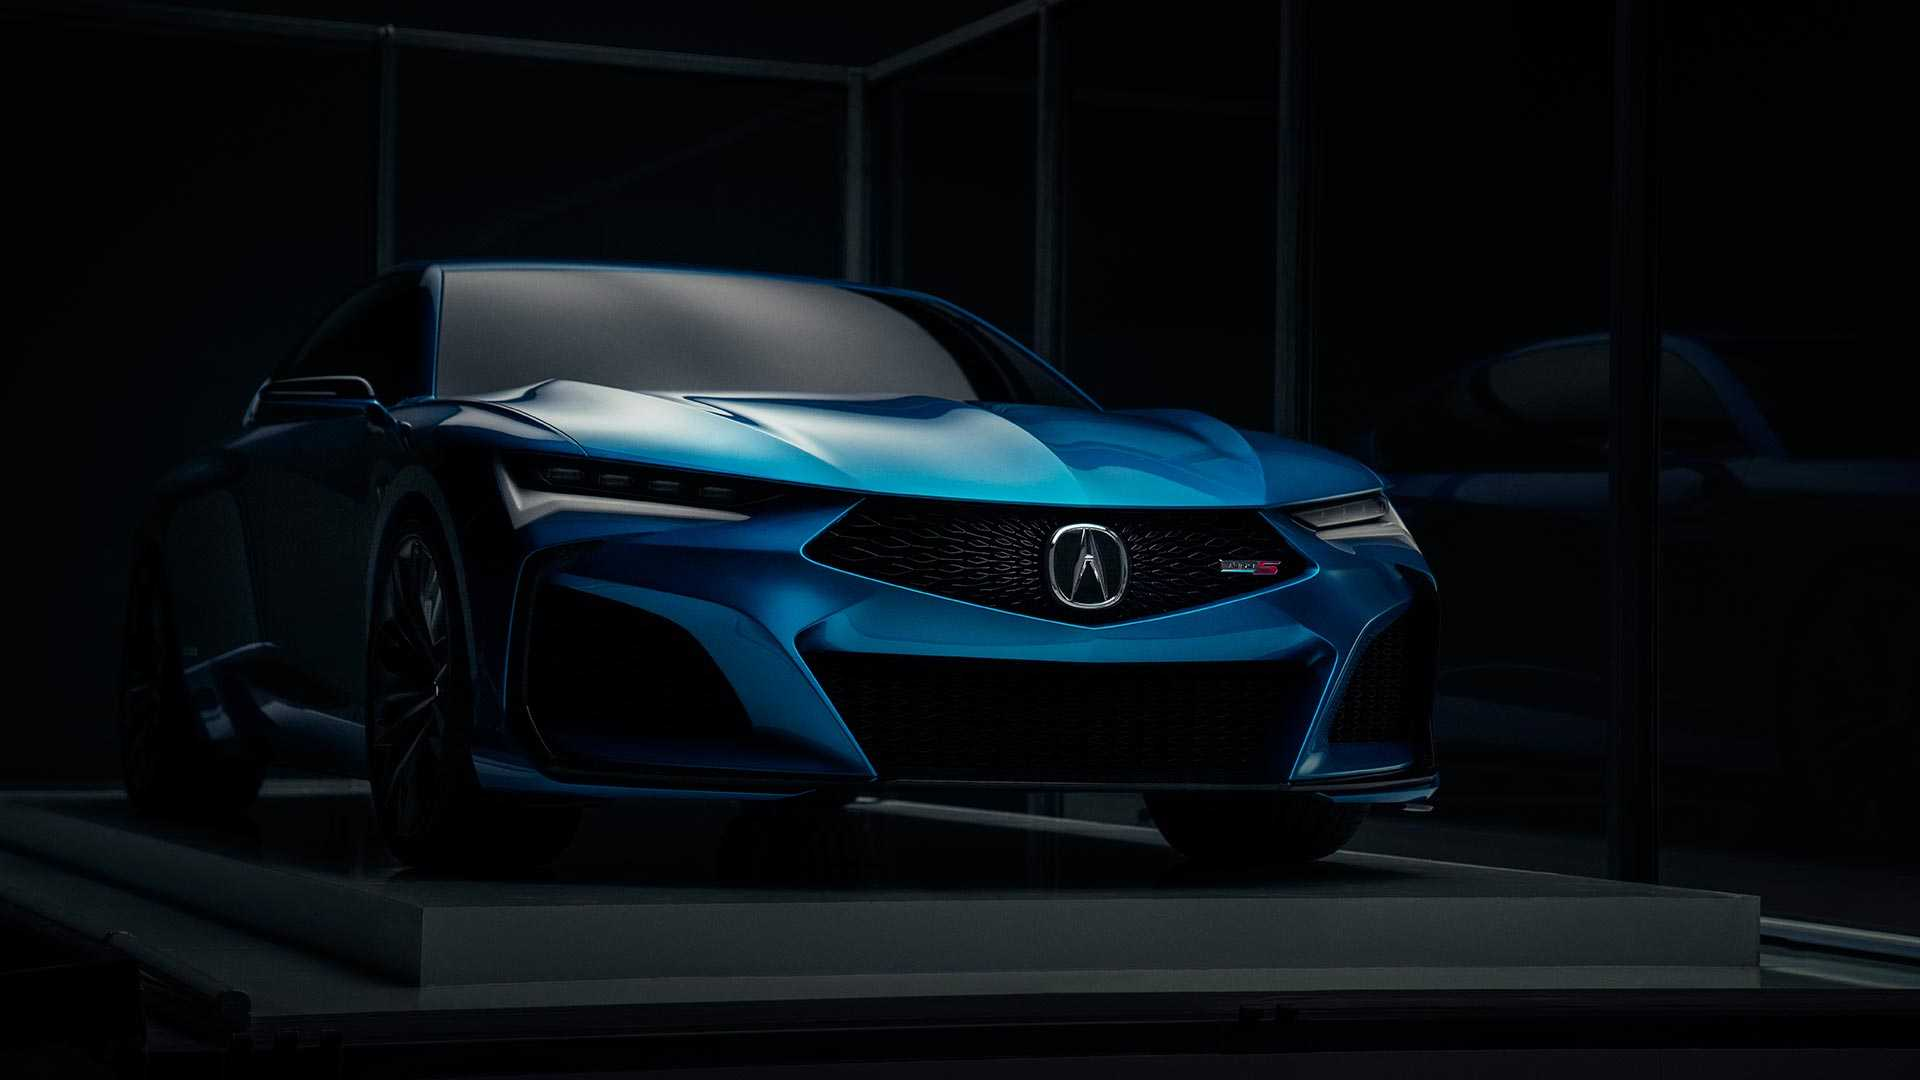 2019 Acura Type S Concept Wallpapers 15 HD Images   NewCarCars 1920x1080